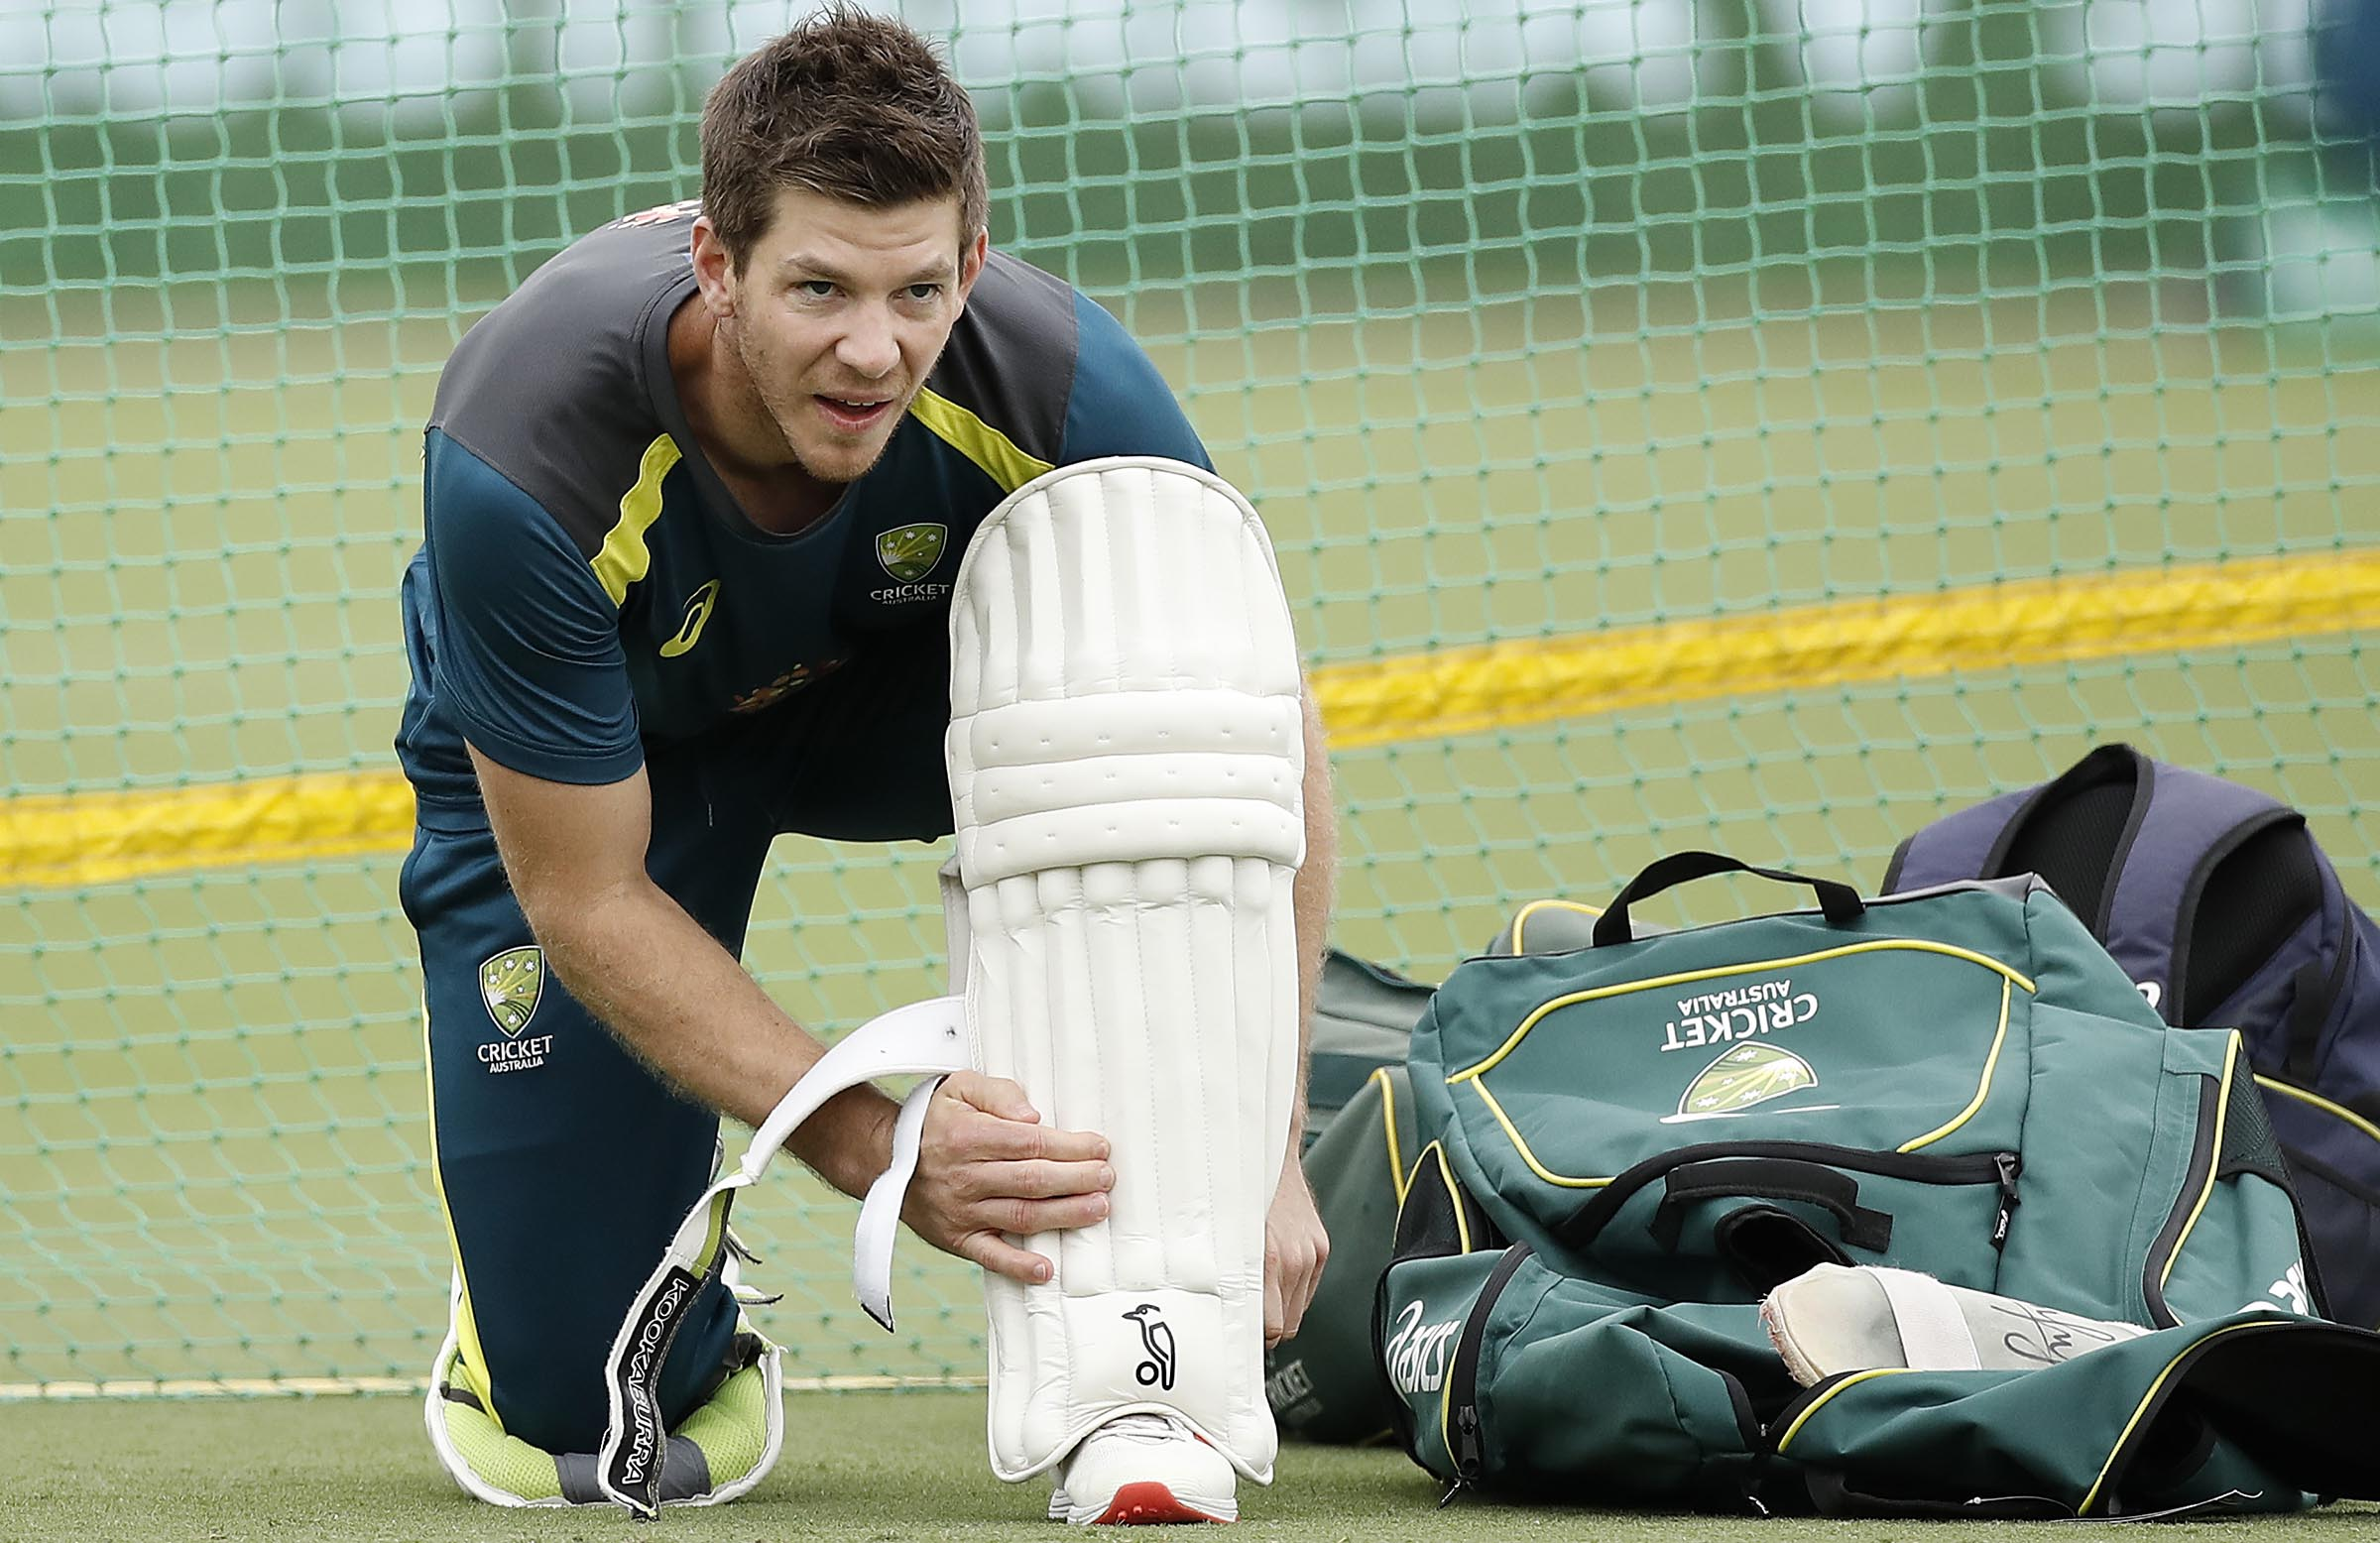 Annoying to lose Test series against India: Paine